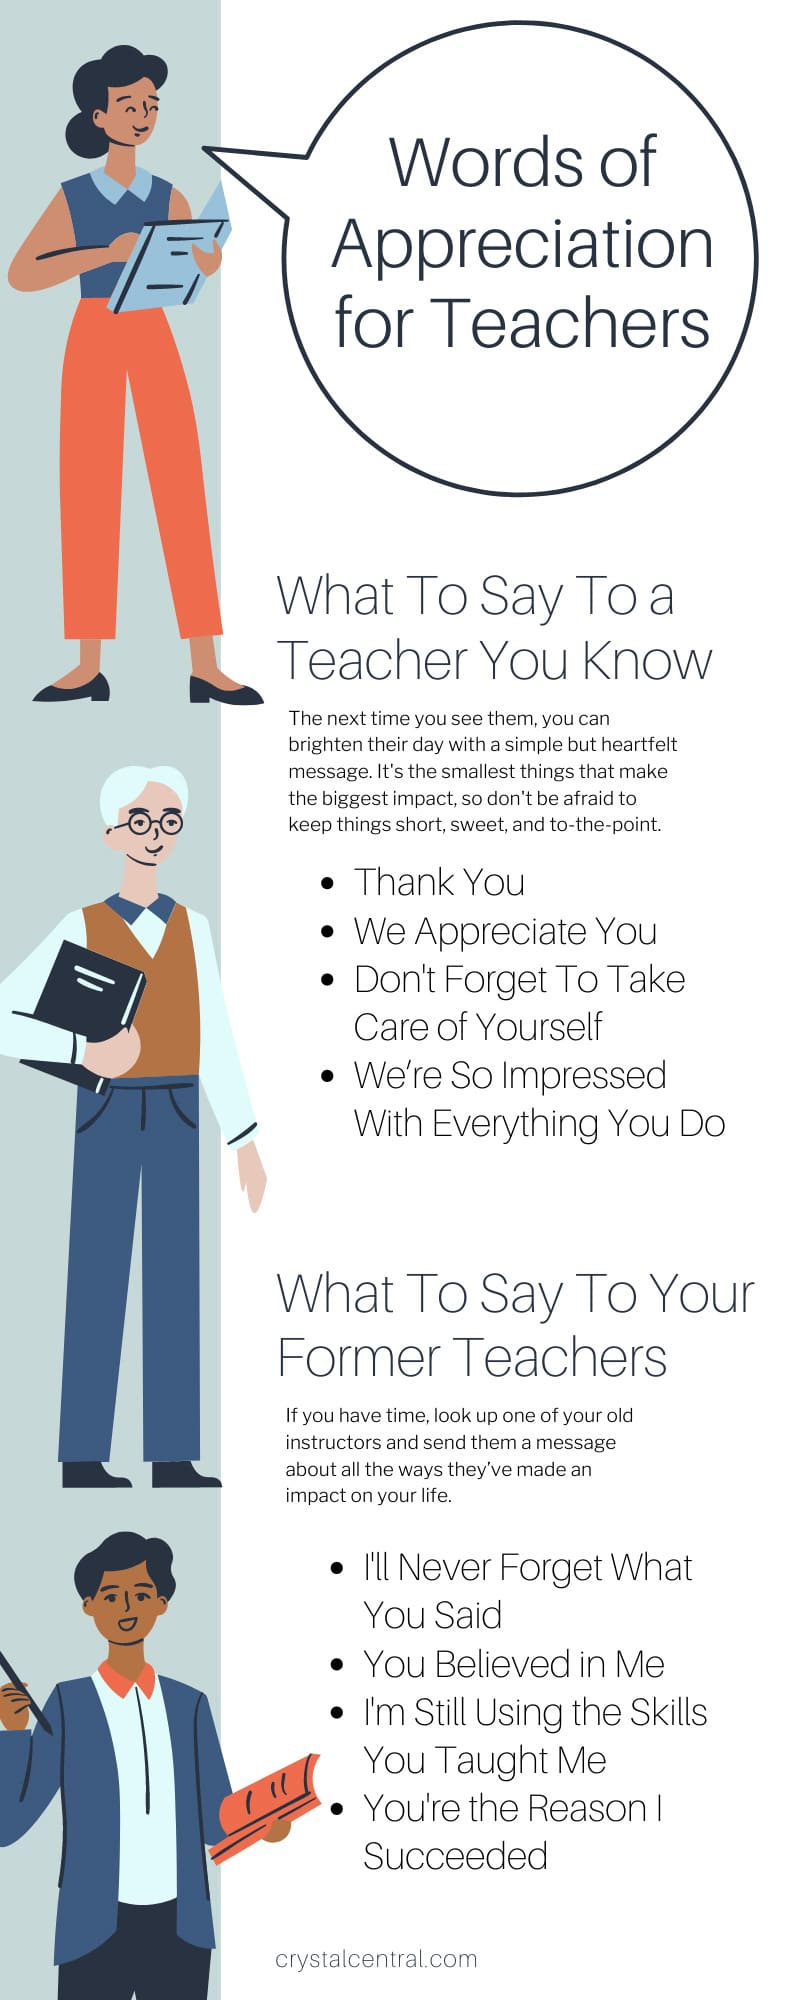 Words of Appreciation for Teachers